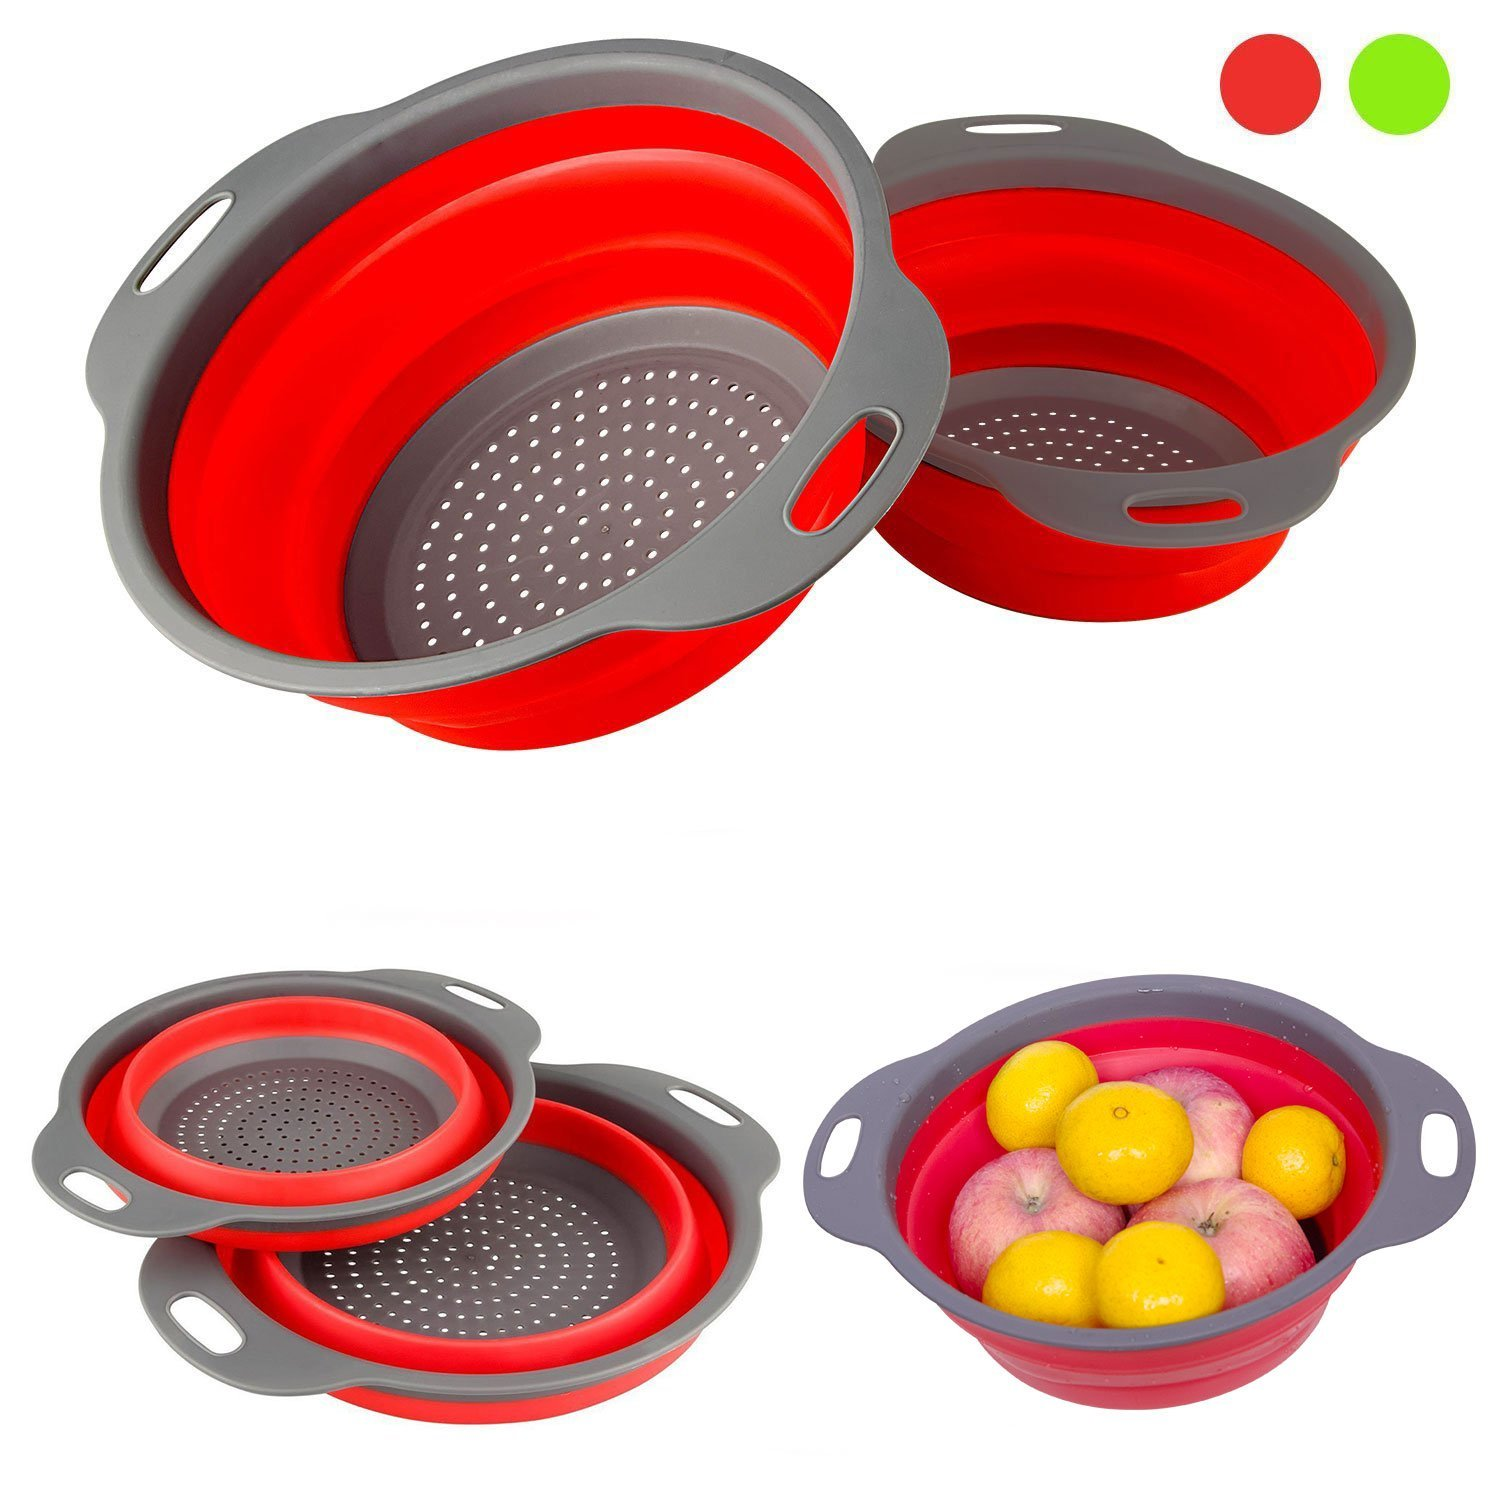 Click here to buy DGEMOC 2 Collapsible Colanders Set(Strainers) , Food-Grade Silicone kitchen Strainer Space-Saver Folding Strainer, 9.5inch and 8inch Size....